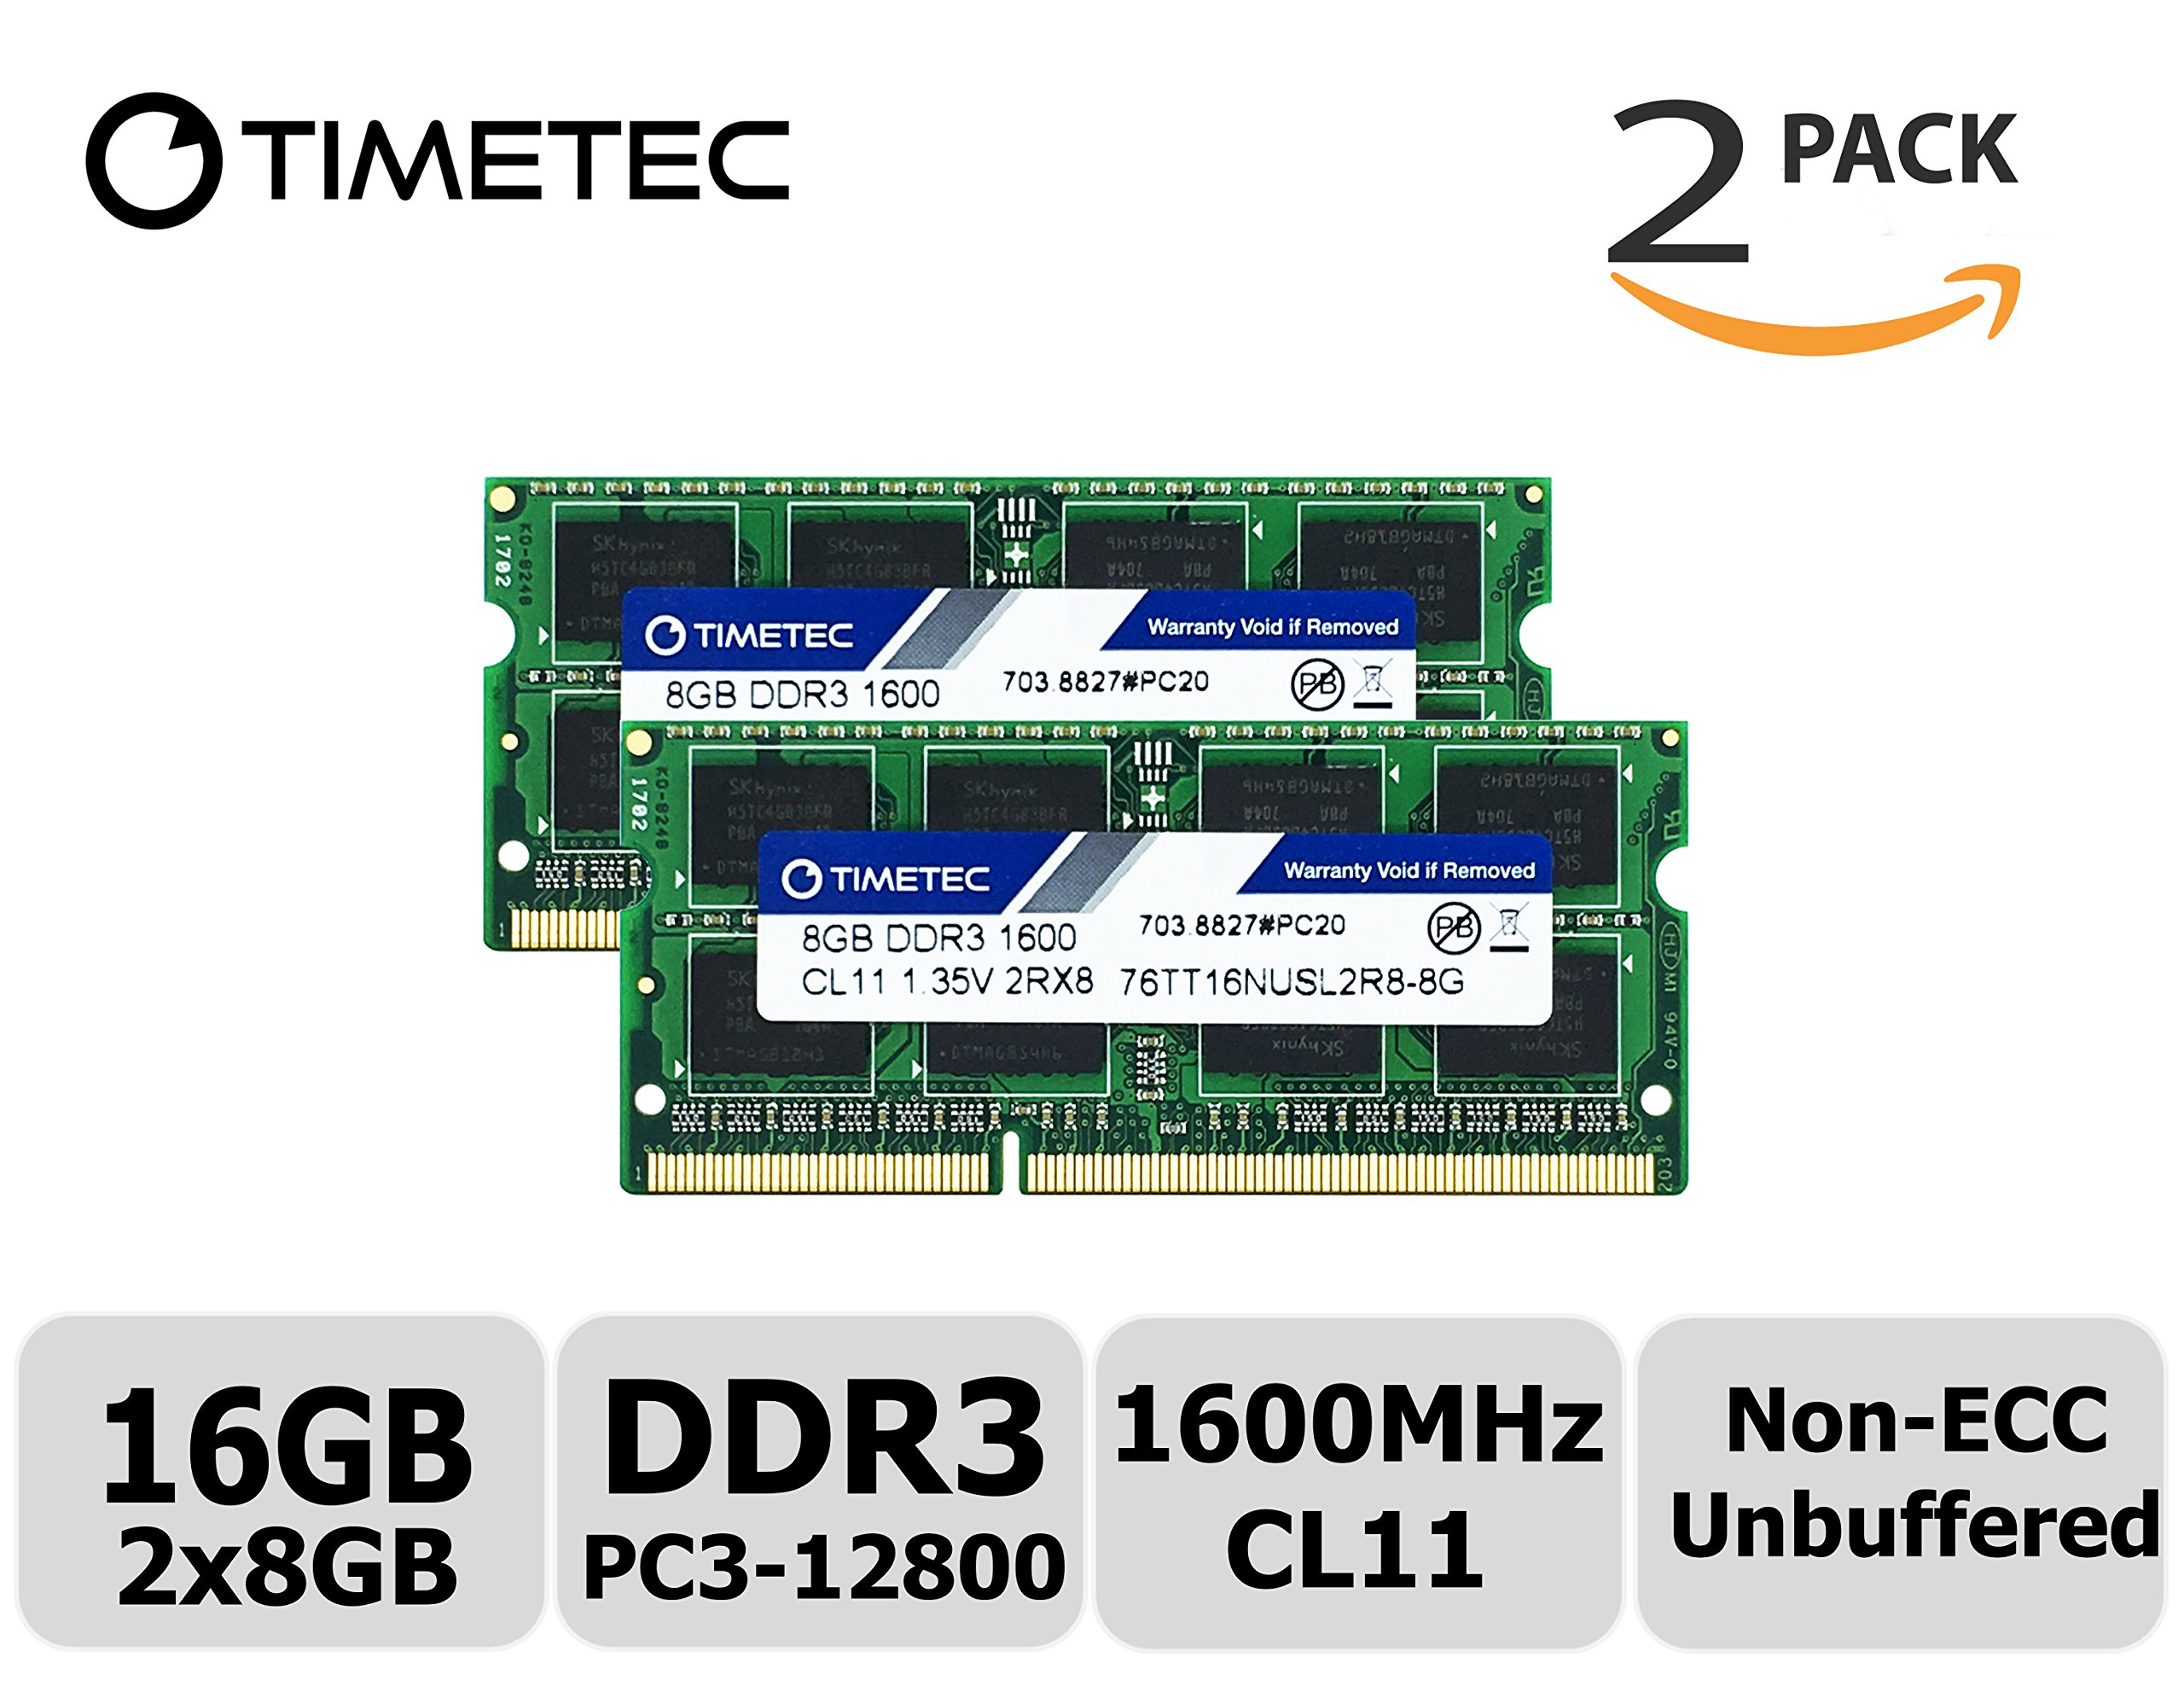 Timetec Hynix IC 16GB Kit(2x8GB) DDR3 1600MHz PC3-12800 Non ECC Unbuffered 1.35V CL11 2Rx8 Dual Rank 204 Pin SODIMM Laptop Notebook Computer Memory Ram Module Upgrade(16GB Kit(2x8GB))